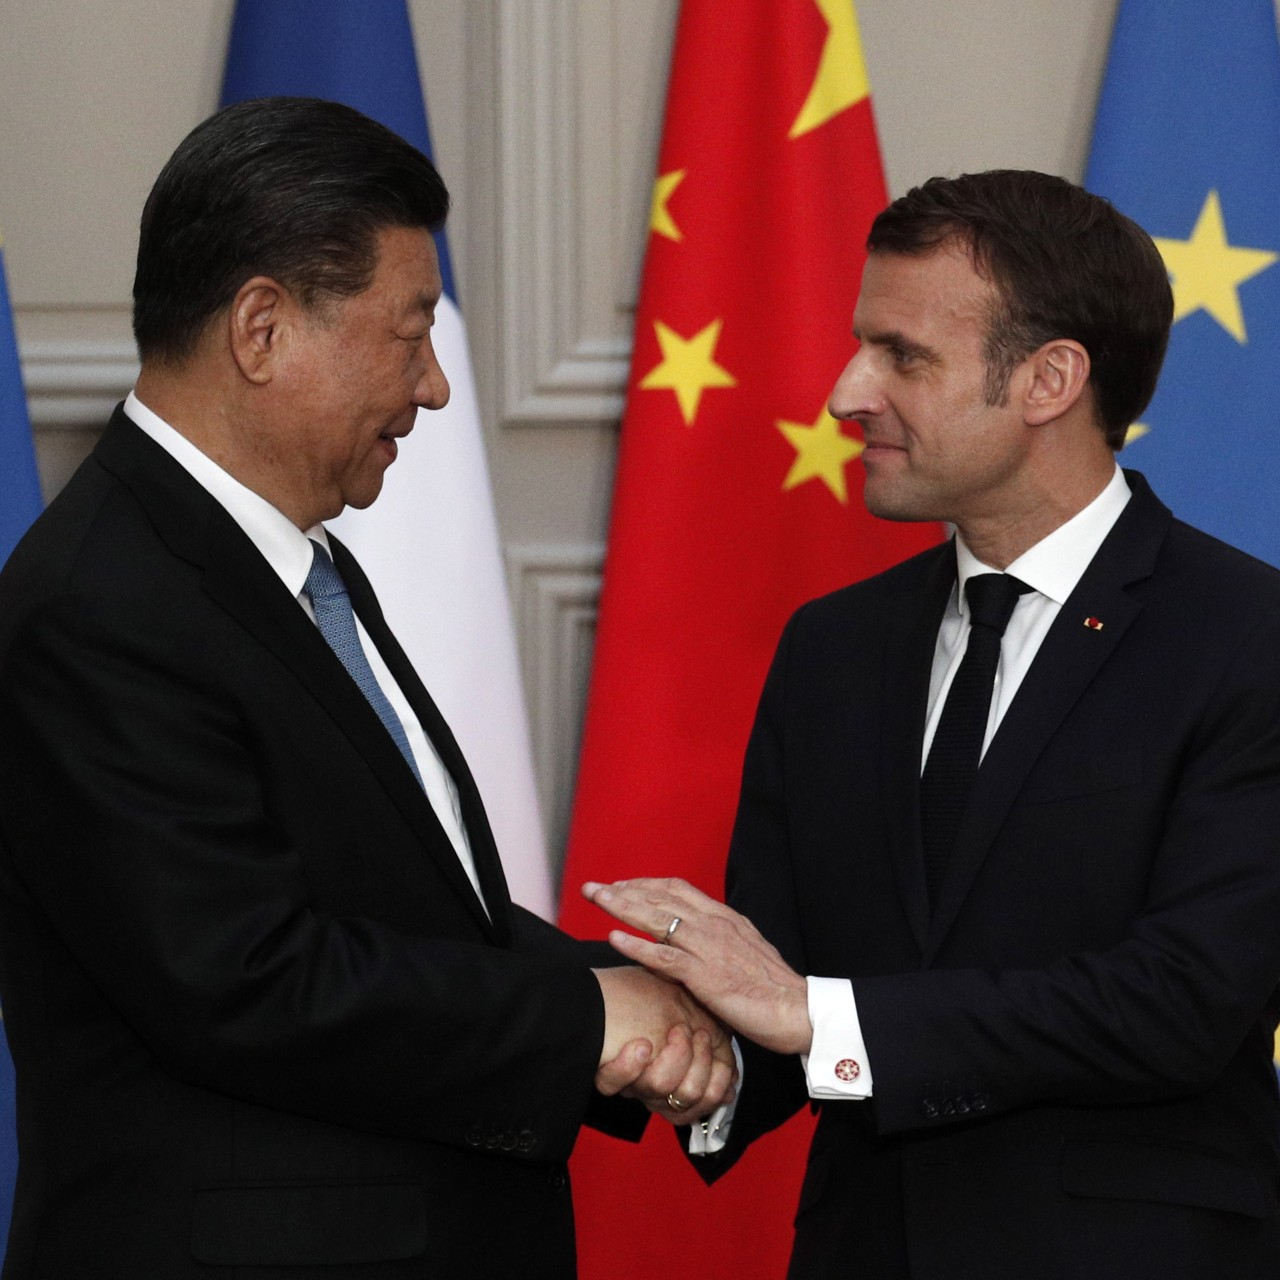 China, France sign US$45 billion of deals including Airbus